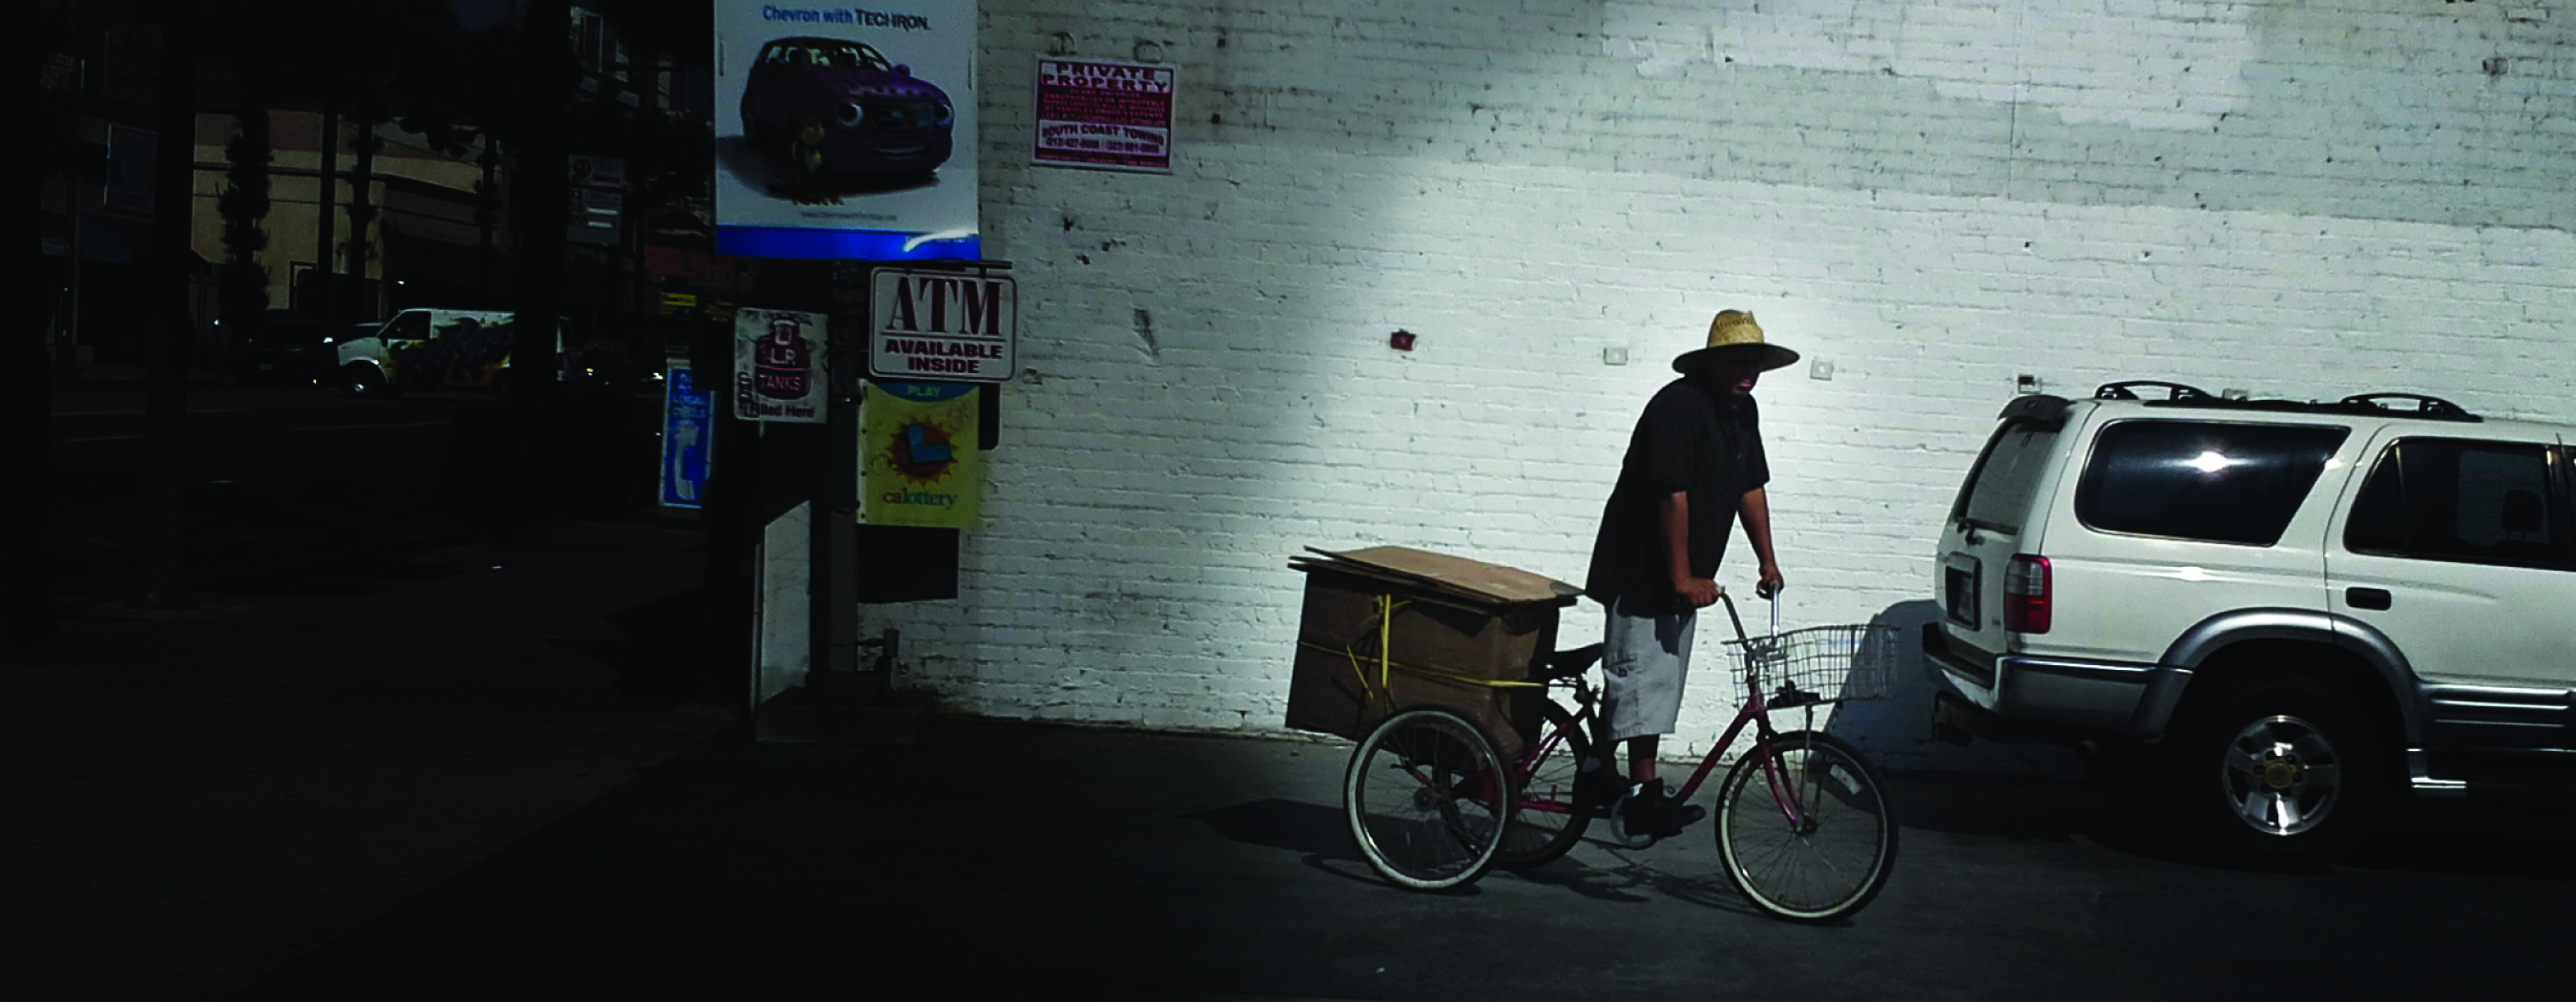 A man in a wide brim straw hat, his face in shadow, stands on top of a bicycle in a dark parking lot